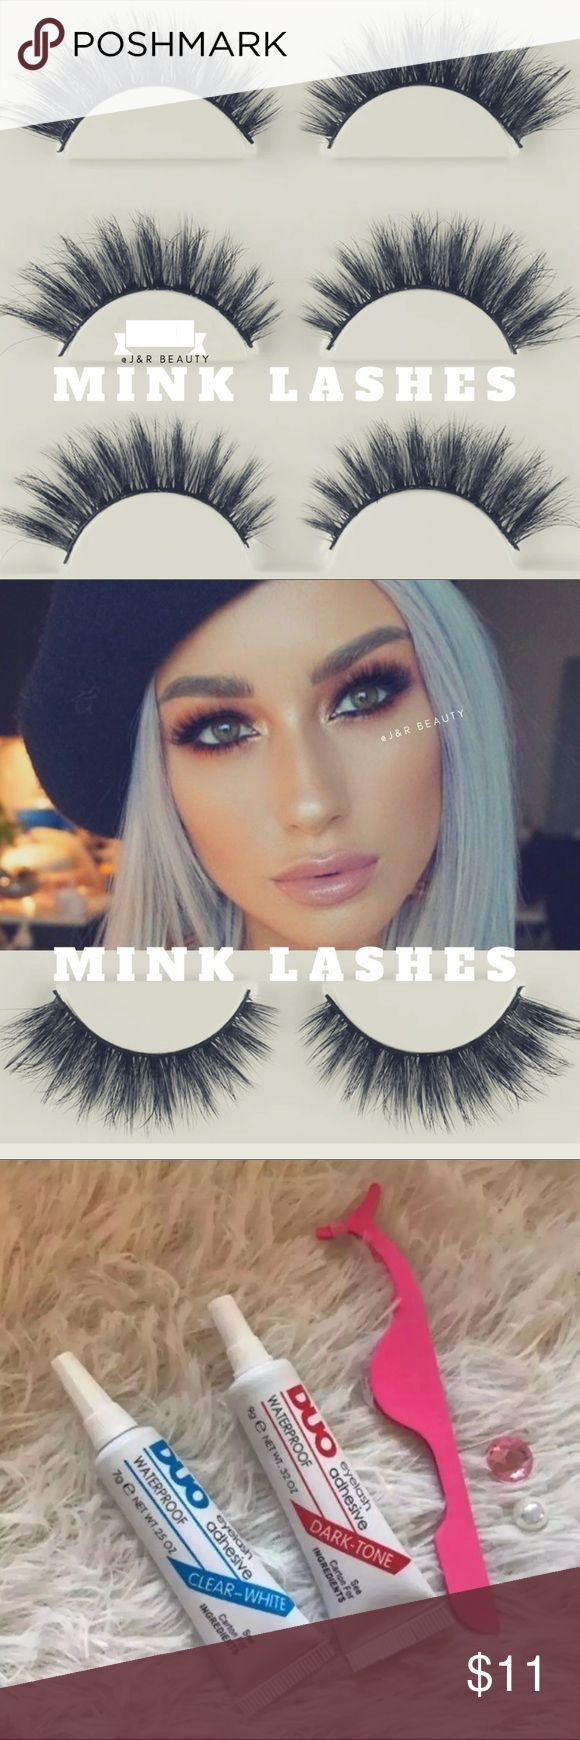 Mink eyelashes 3 Pairs +$2 Add on eyelash Applicator  +$3 Add on eyelash glue Please message me if you want to add them.  # tags Iconic, mink, red cherry eyelashes, house of lashes, doll, kawaii, case, full, natural,  Koko, Ardell, wispies, Demi , makeup, Iconic, mink, red cherry eyelashes, house of lashes, doll, kawaii, case, full, natural,  Koko, Ardell, wispies, Demi , makeup, mascara, eyelash applicator, Mykonos Mink , Lashes , wispy ,eyelash case, mink lashes  Ship within 24 hours ❣️…